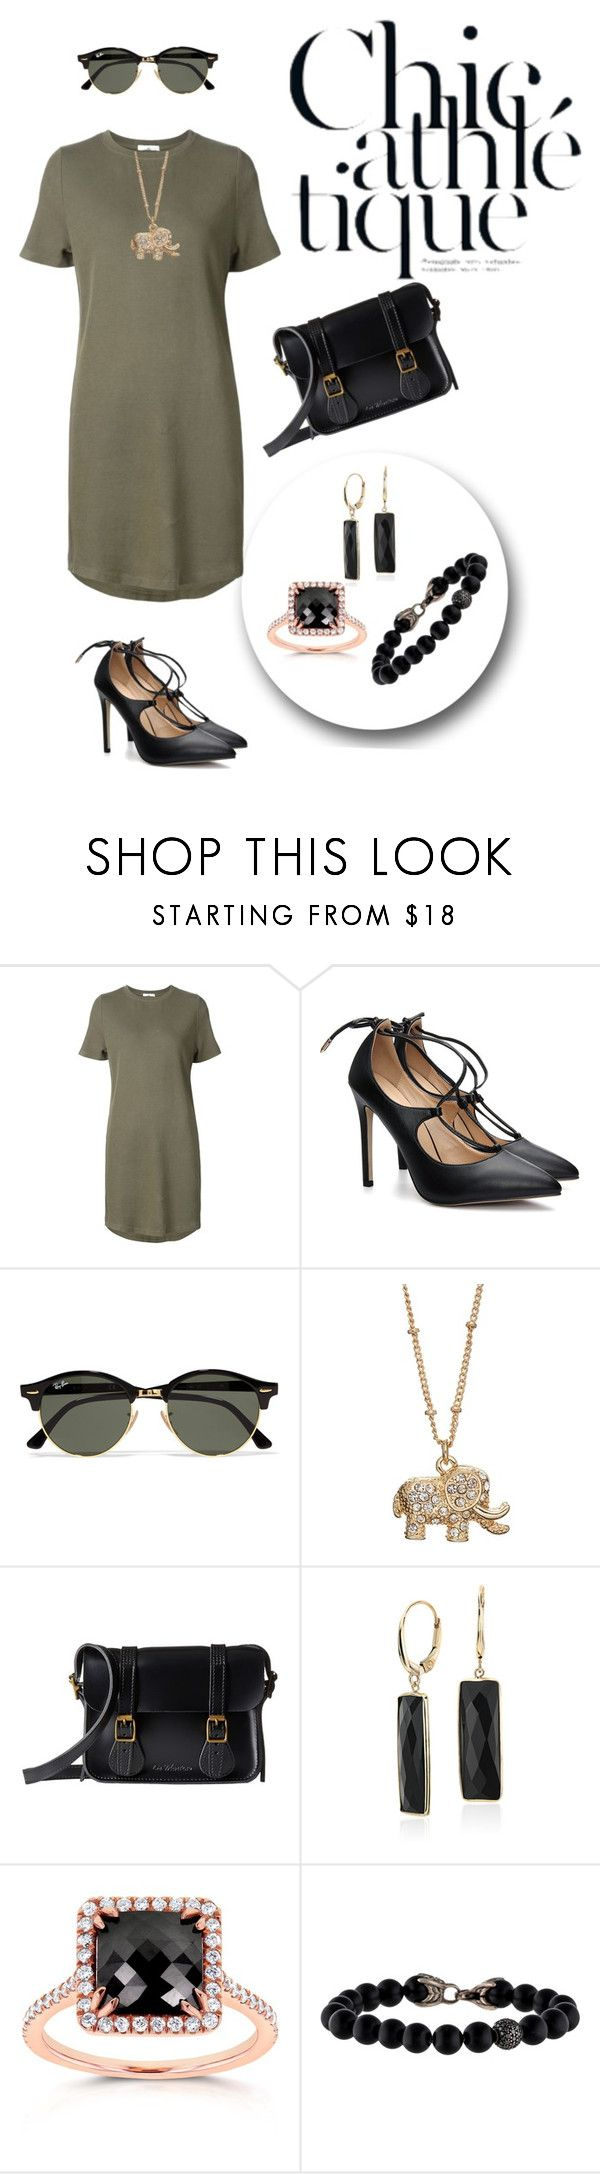 """""""Untitled #1902"""" by swc0509 ❤ liked on Polyvore featuring 321, Ray-Ban, LC Lauren Conrad, Dr. Martens, Blue Nile, Kobelli and David Yurman"""